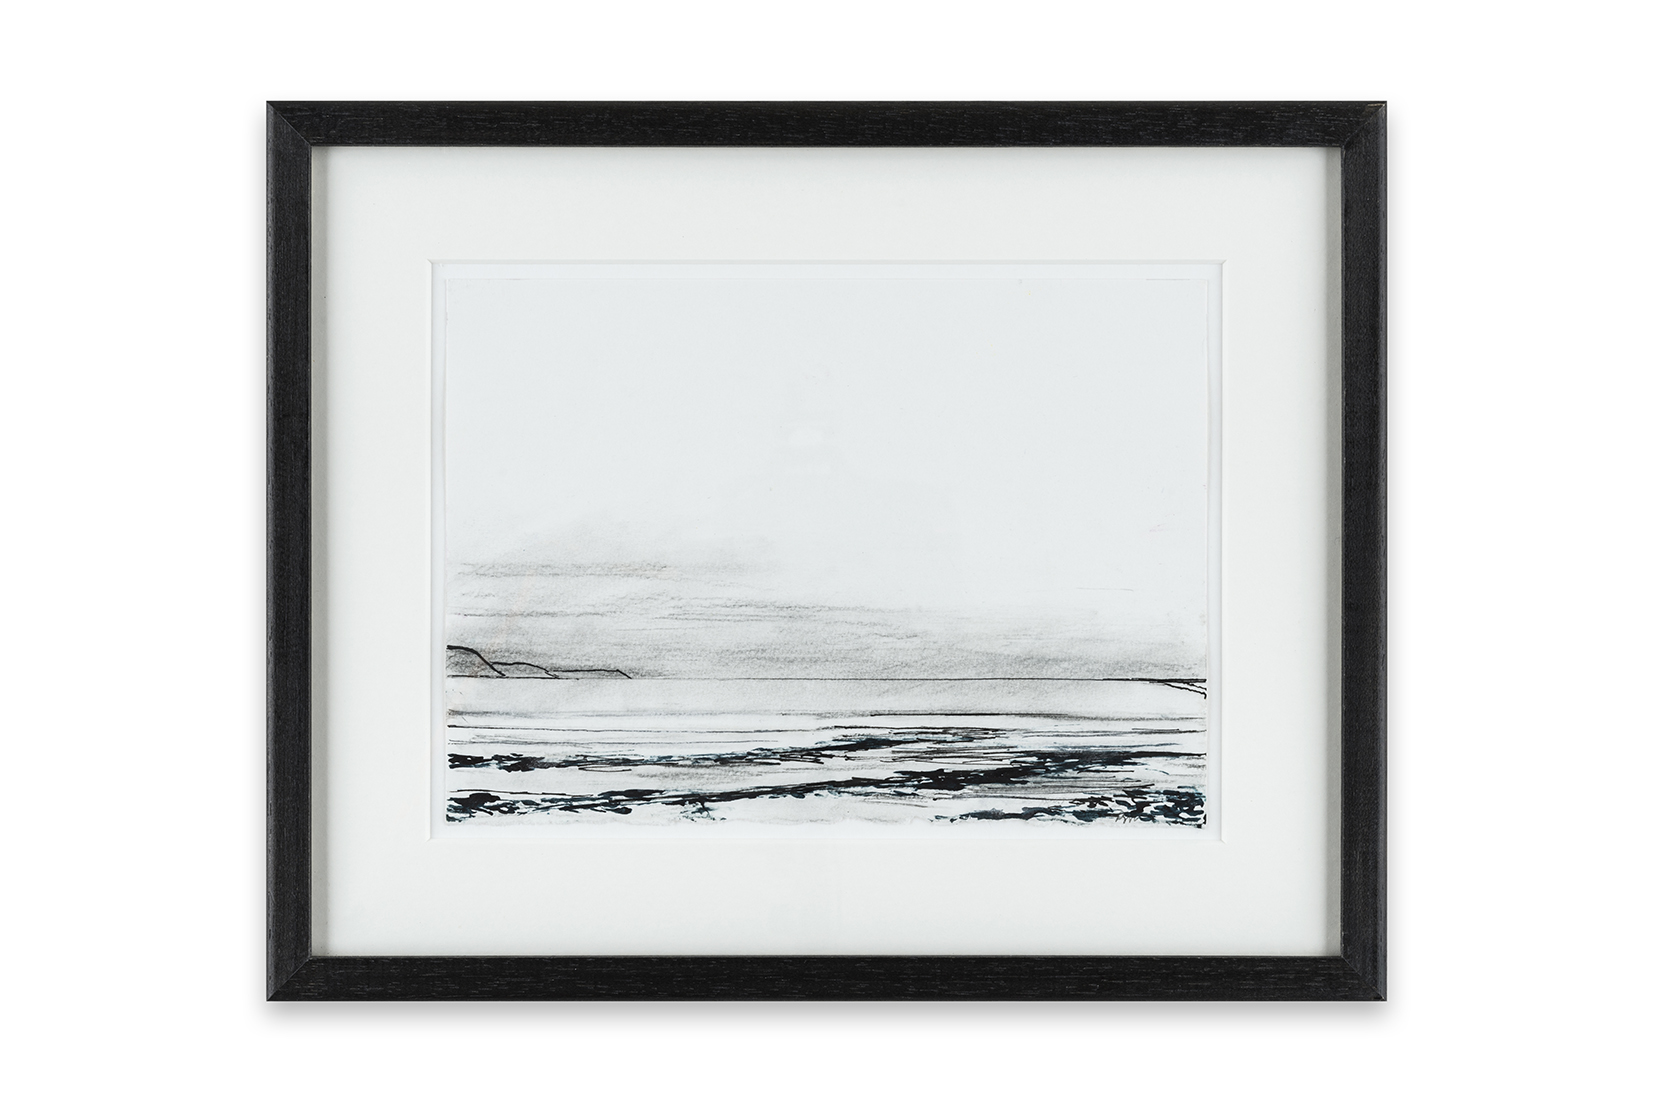 4 Receding Tide, Time and Tide series, 15 x 21 cm, ink and charcoal on paper